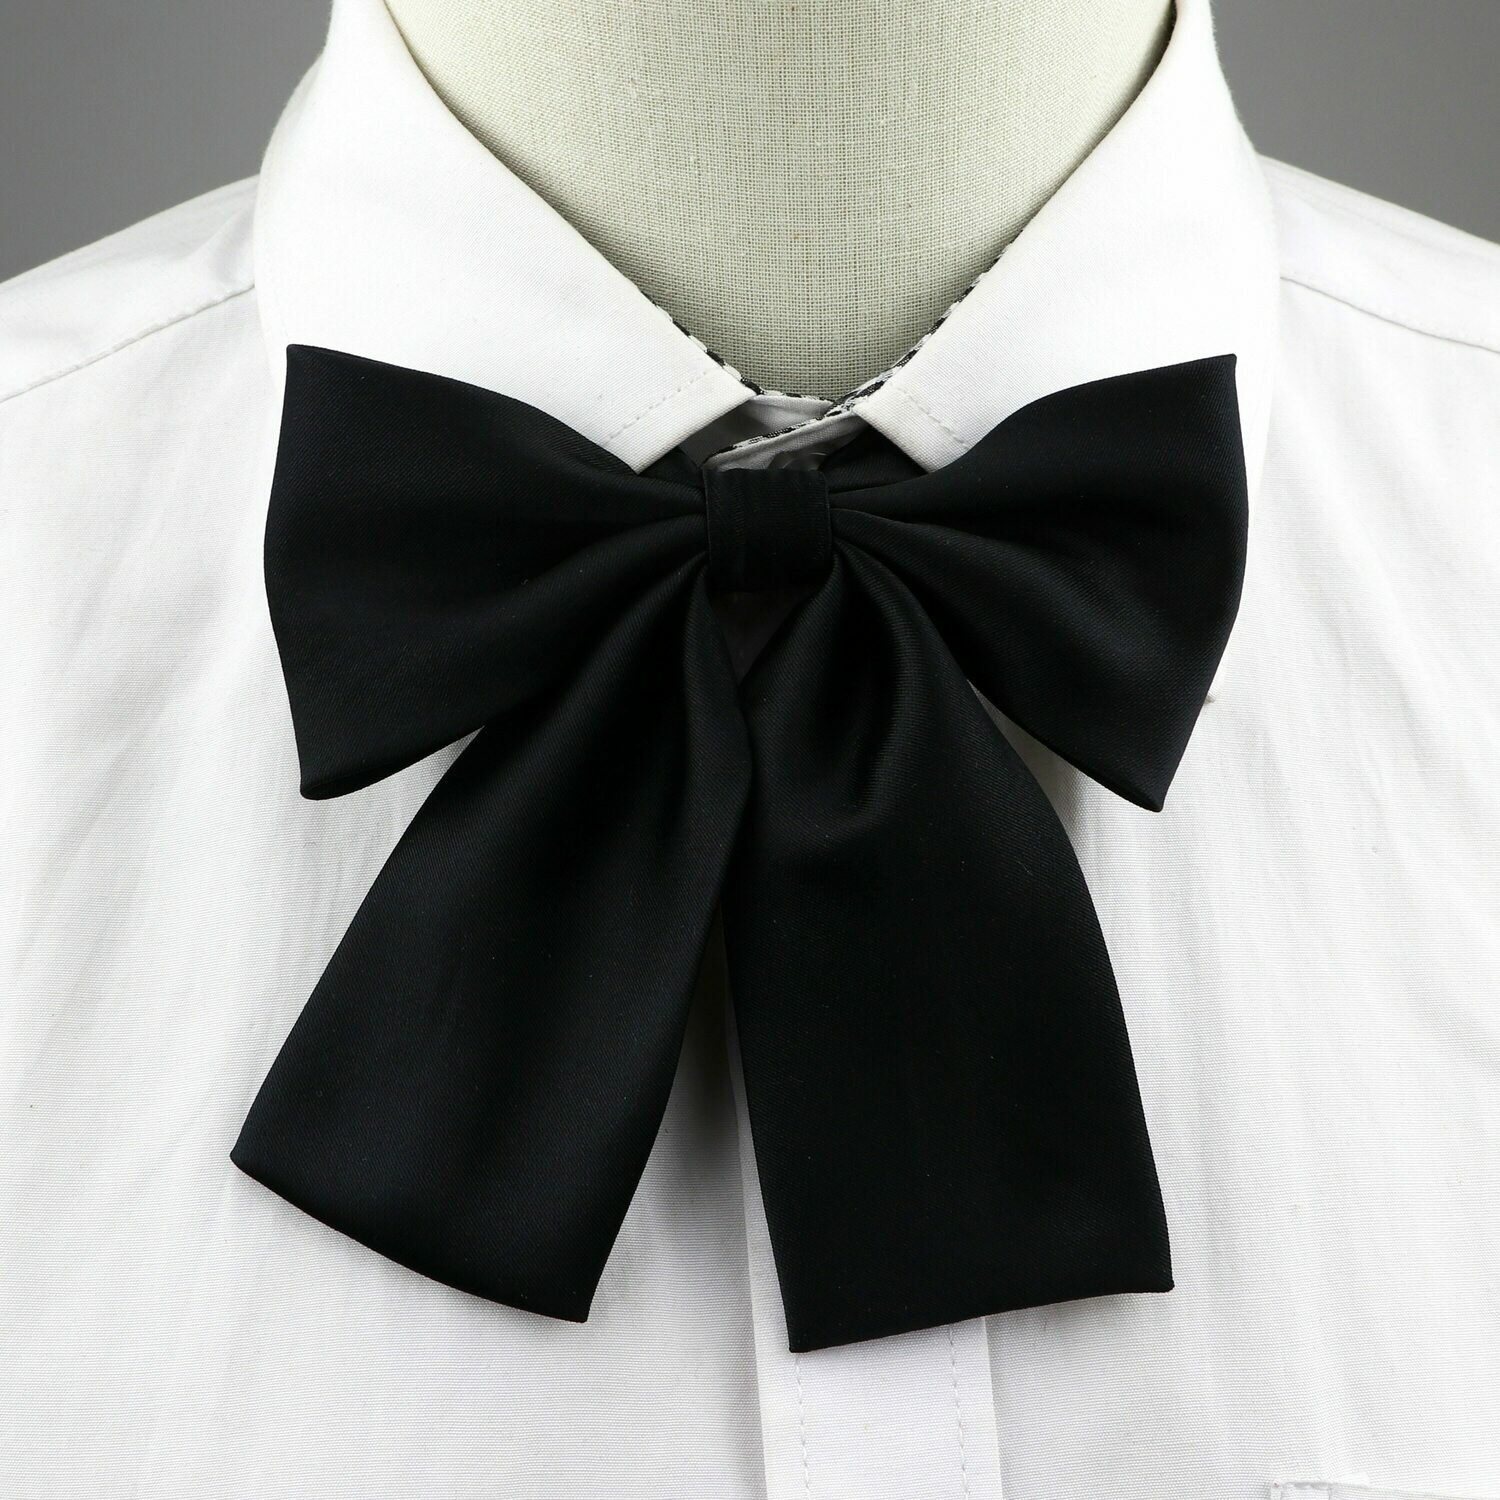 Colorful Women's Shirts Bowtie Ladies Girl School Wedding Party Bowknot Pink Bule Black Classic Butterfly Knot Suits Accessories